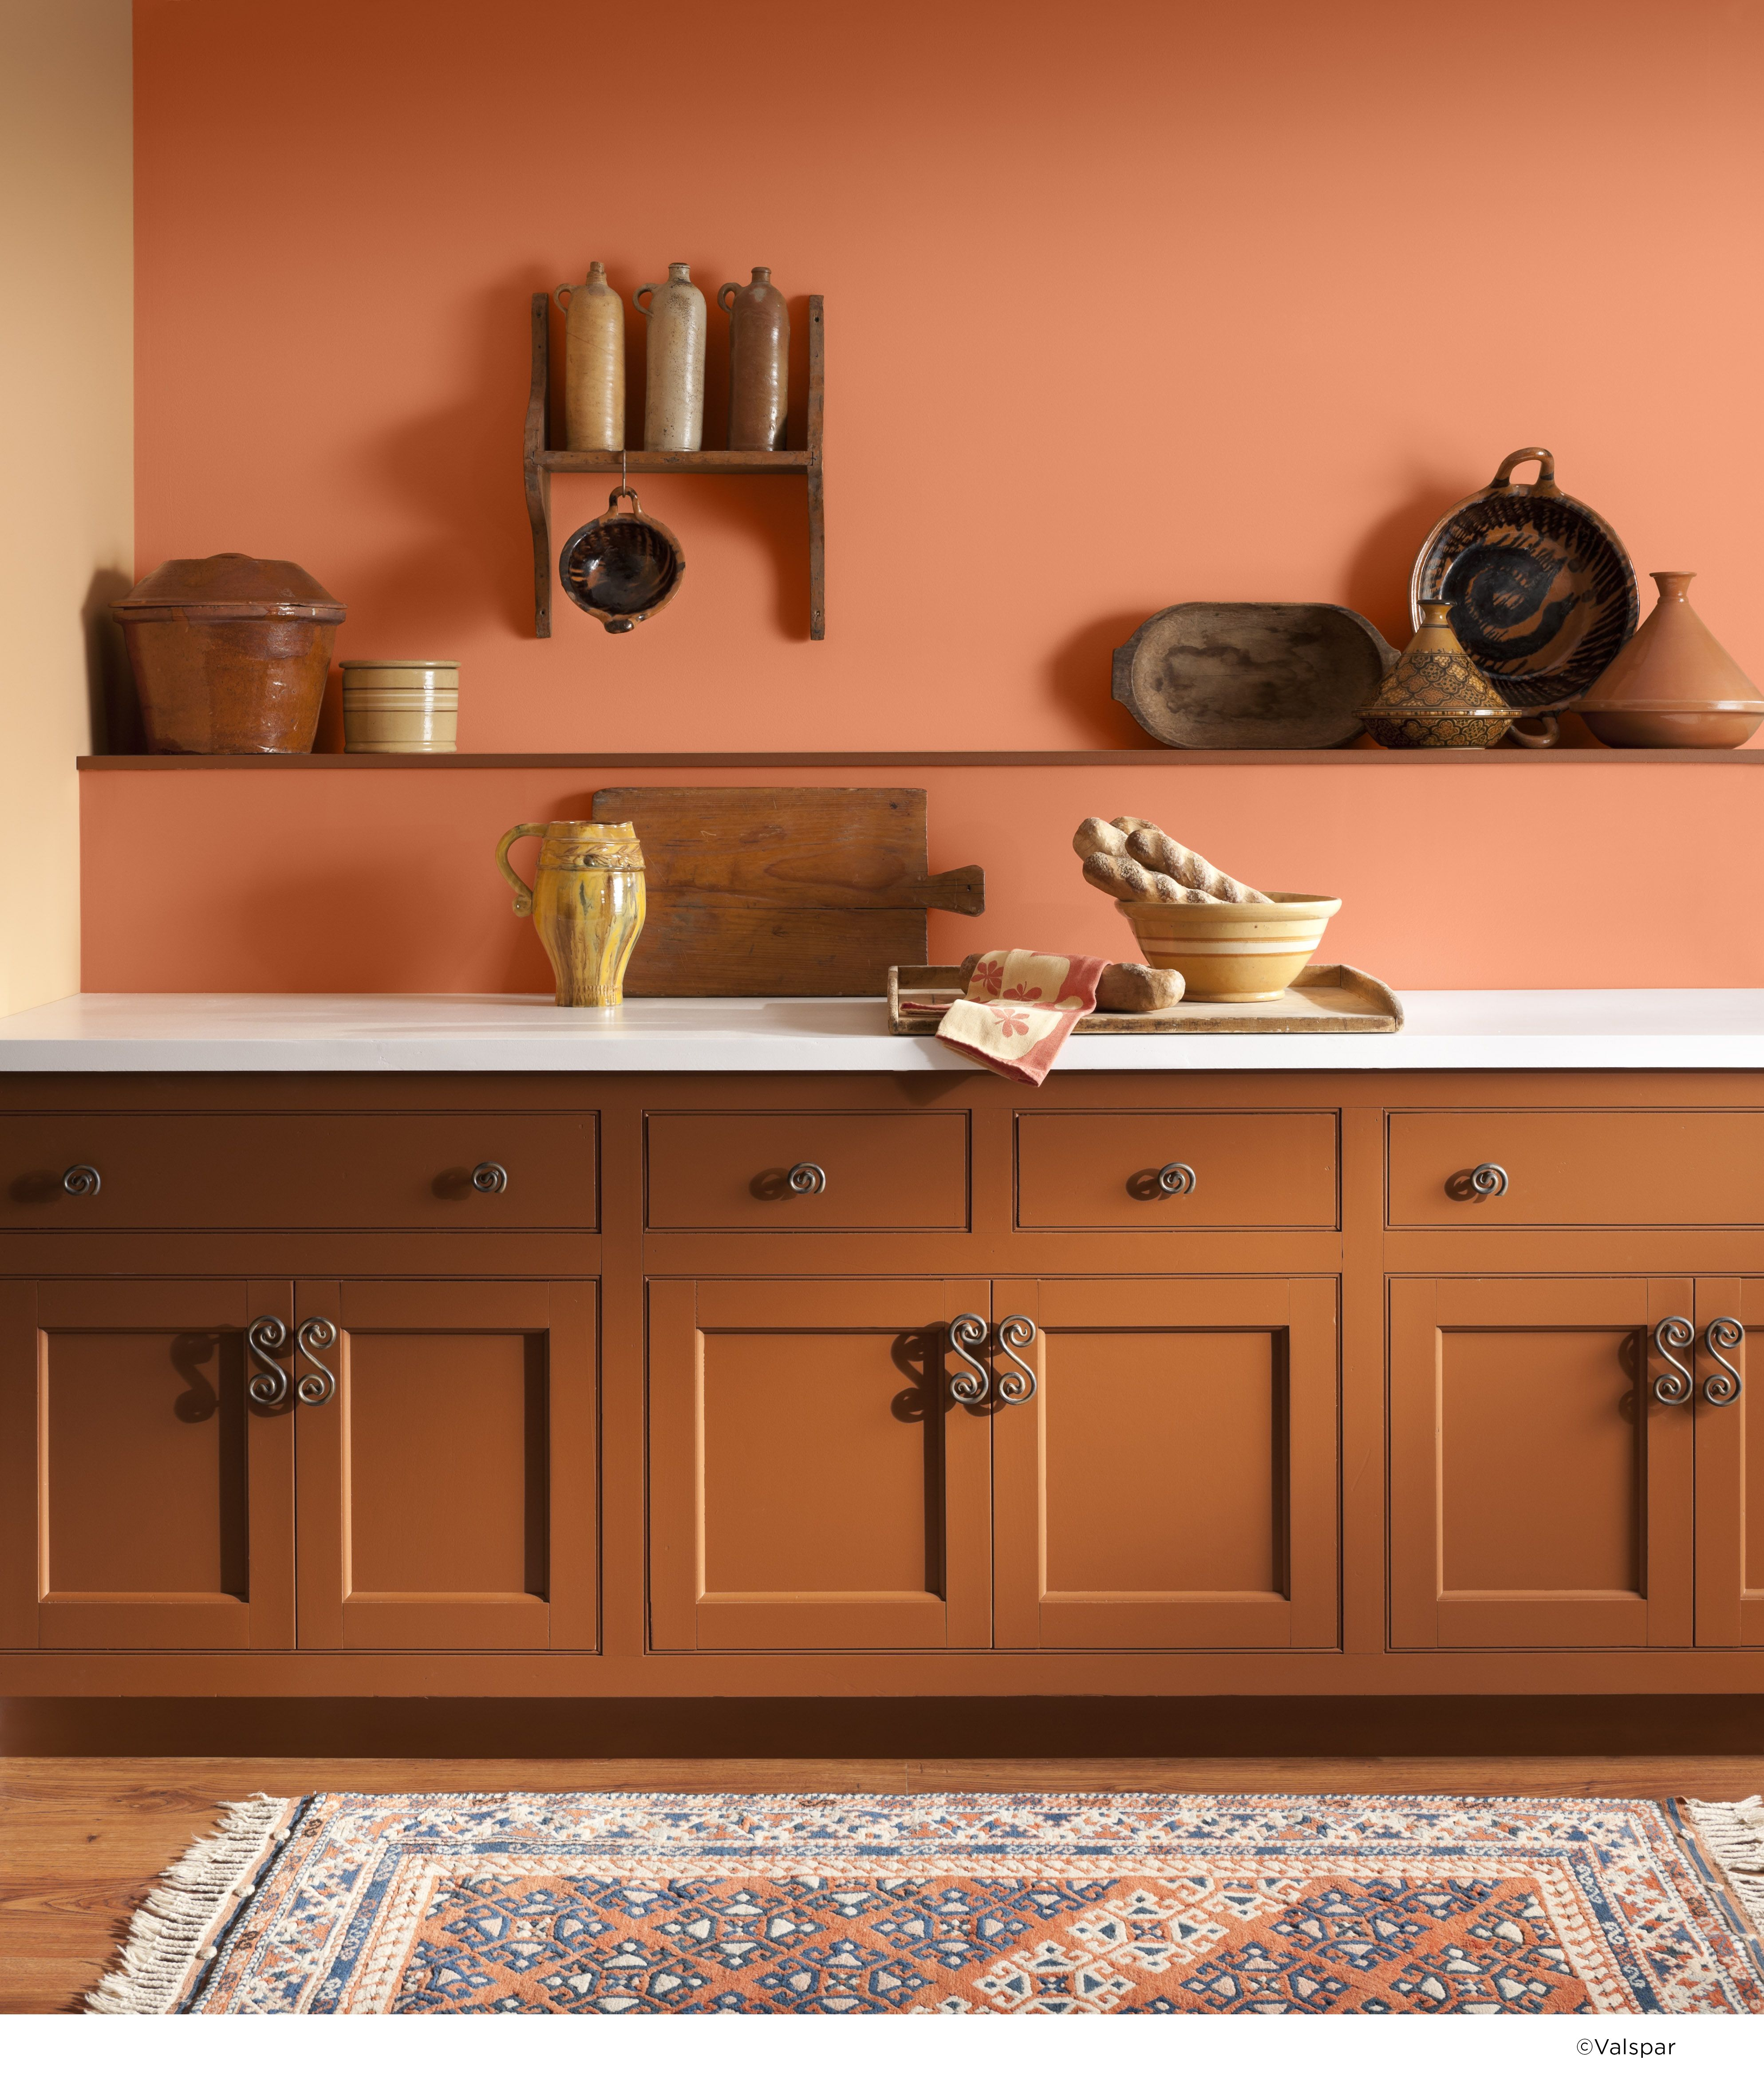 Best Kitchen Gallery: An Orange Wall Can Bring Extra Rustic Warmth To Any Kitchen Color of Valspar Kitchen Colors on rachelxblog.com